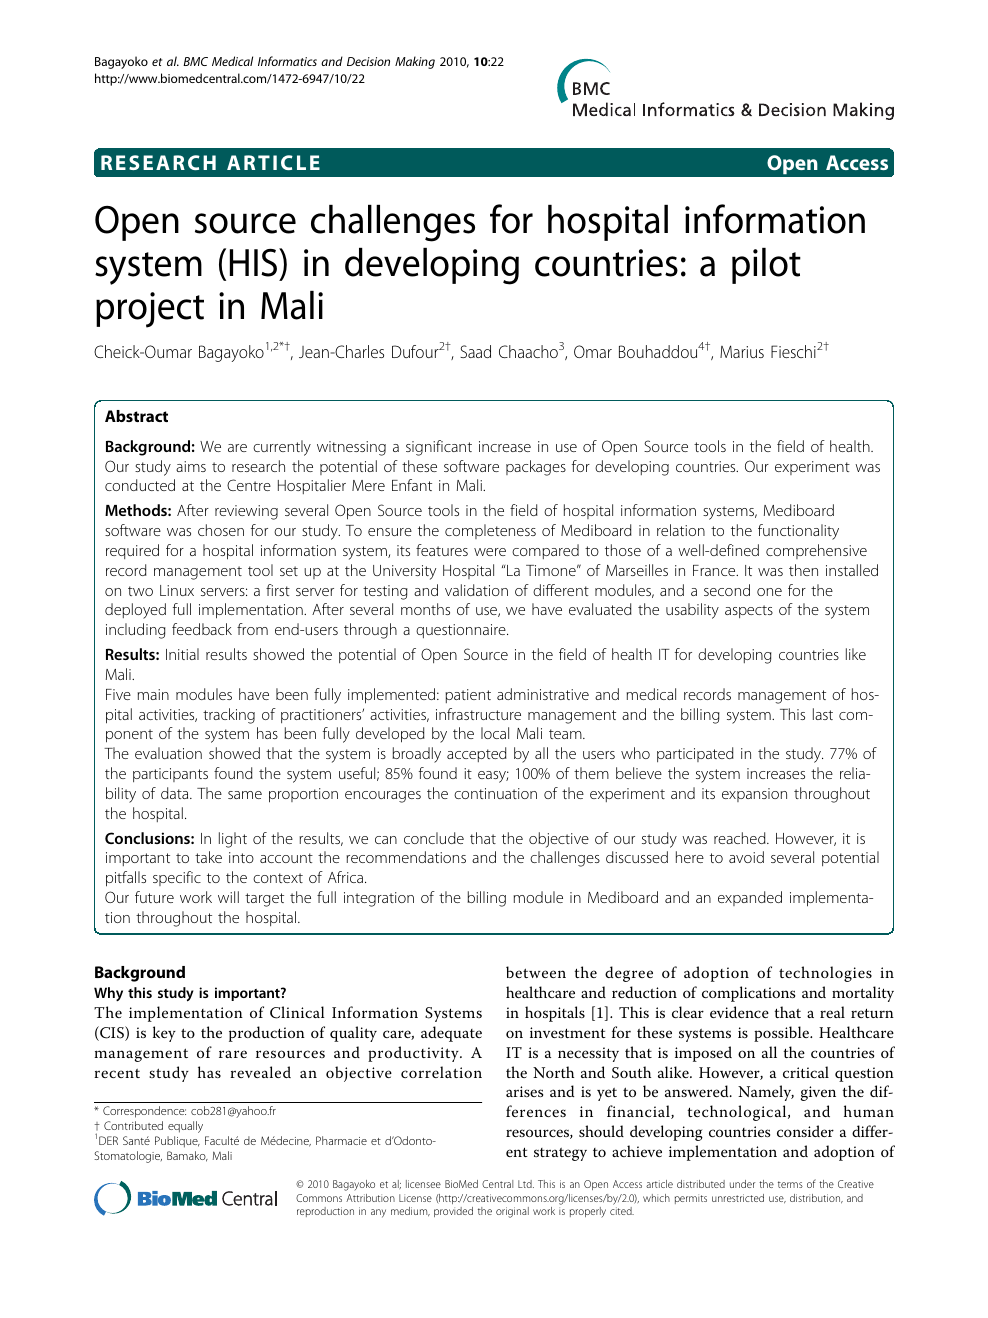 Open source challenges for hospital information system (HIS) in